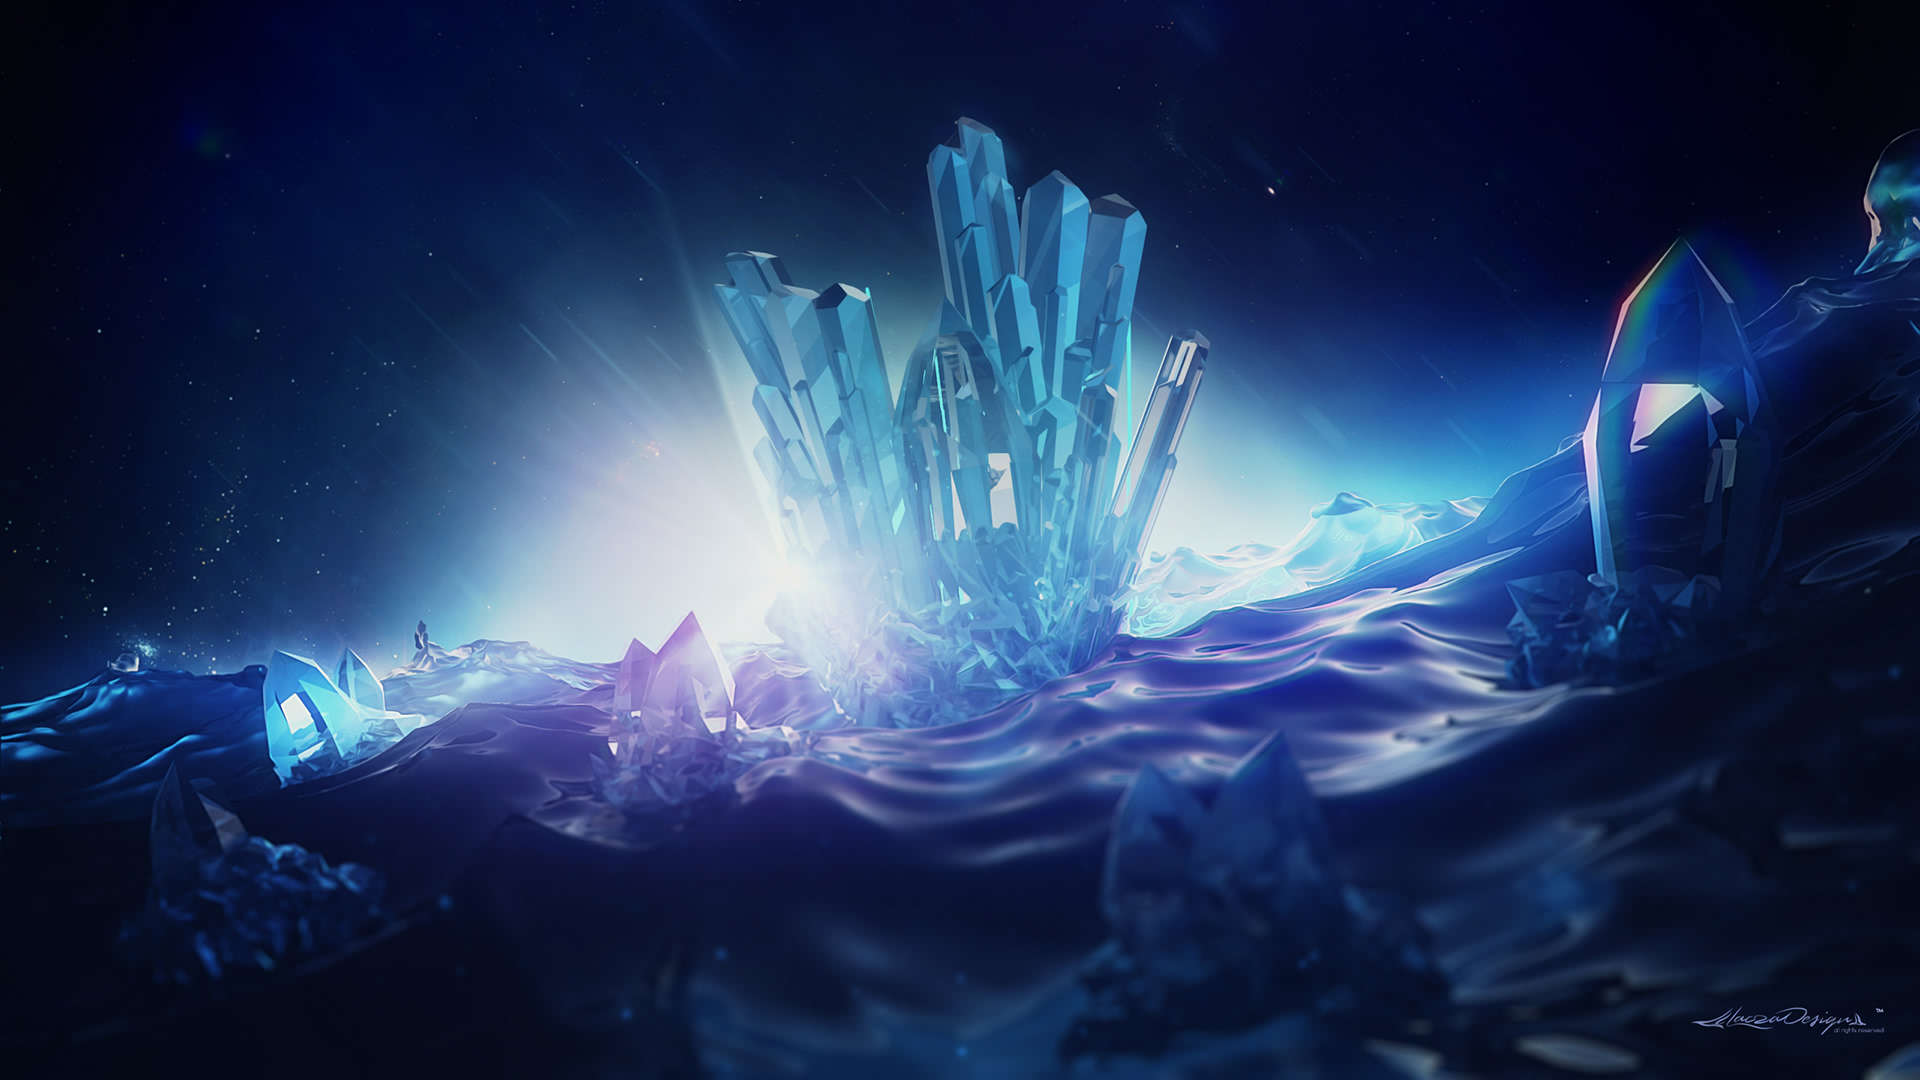 Minimal Artistic Crystal Wallpaper